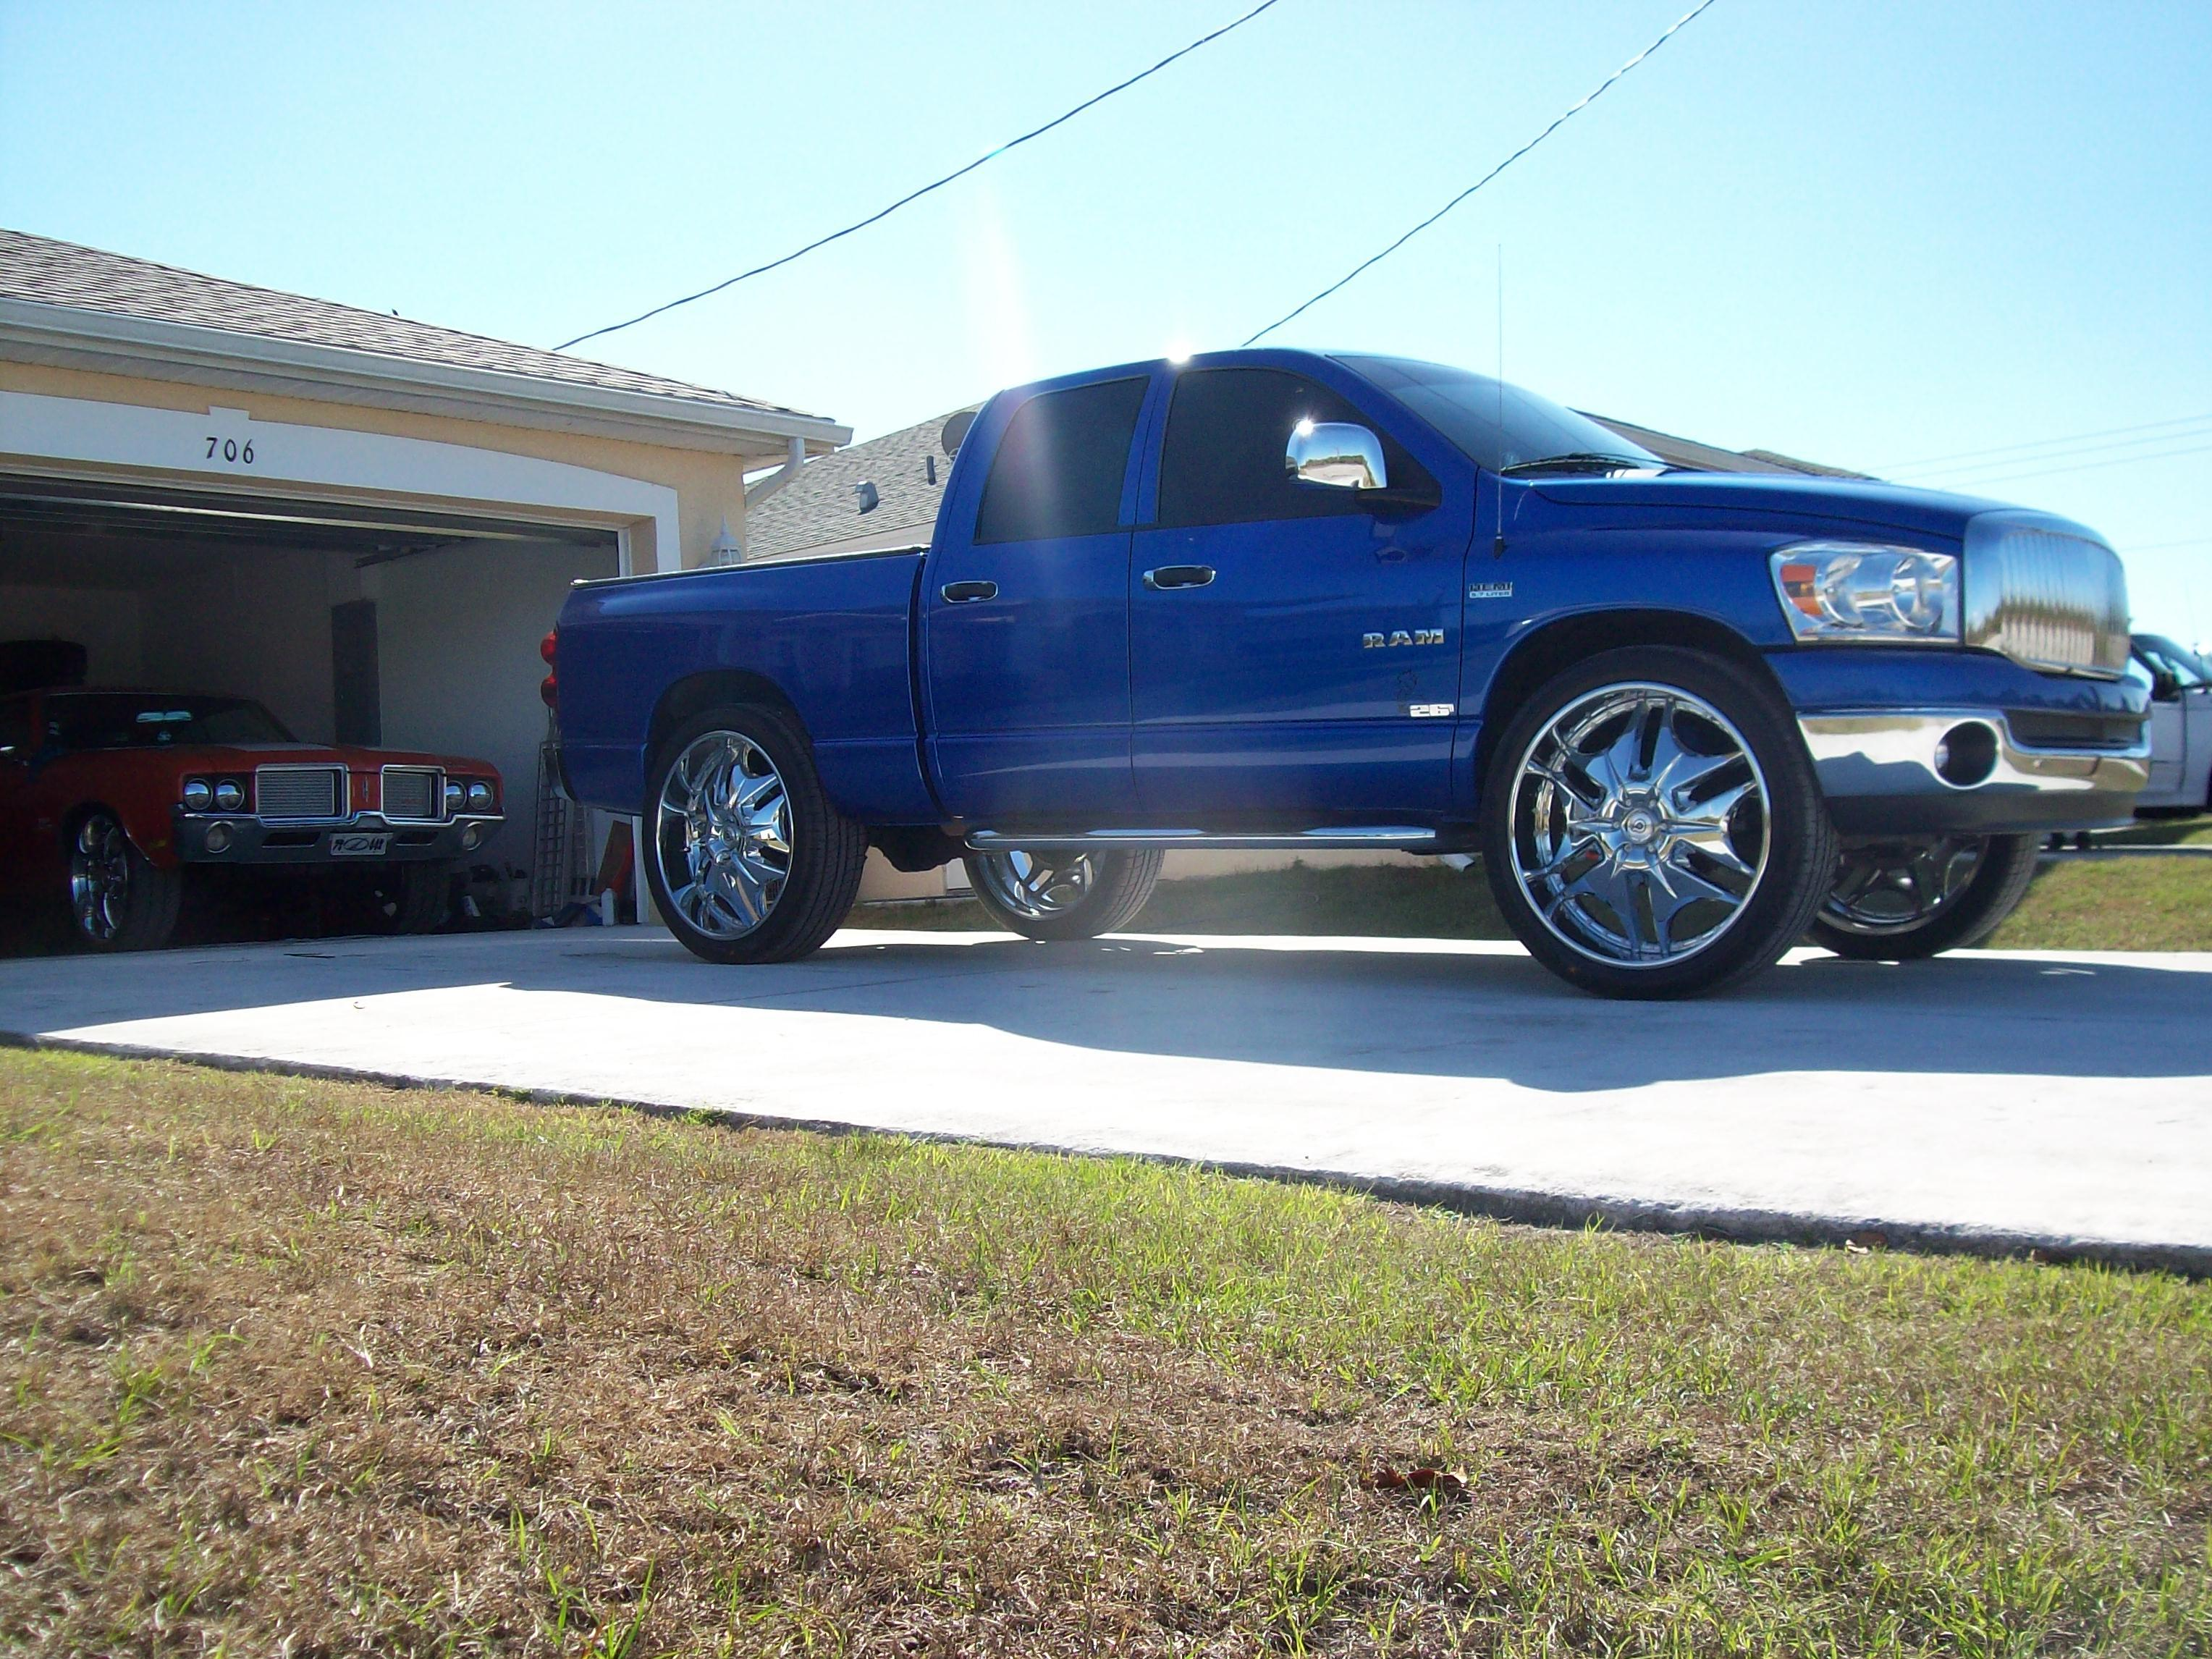 yogistylez1000's 2008 Dodge Ram 1500 Regular Cab